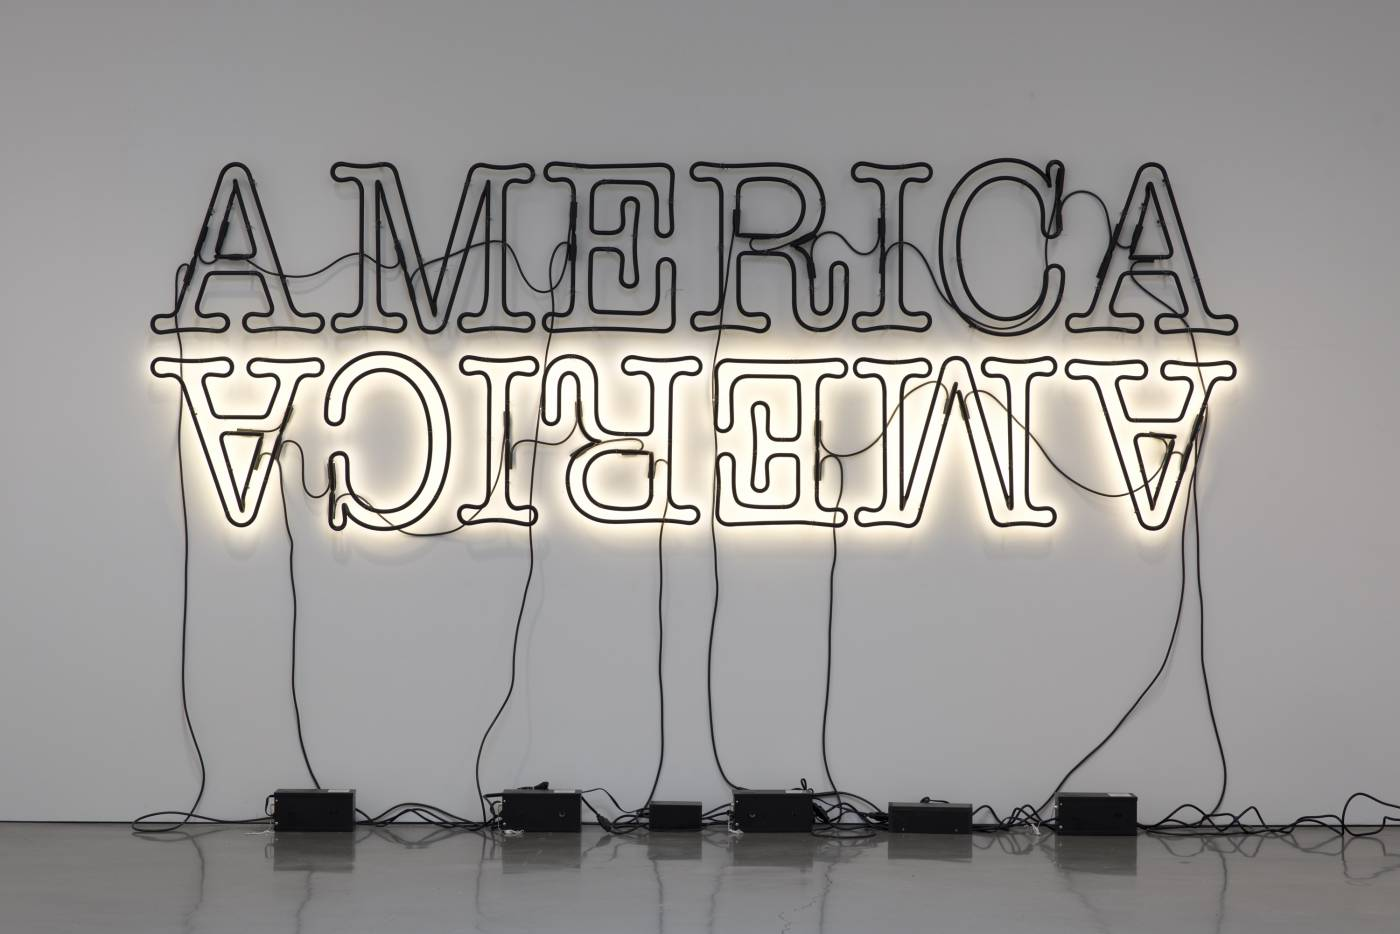 Glenn Ligon, Double America 2, © Glenn Ligon; Image courtesy of the artist, Luhring Augustine, New York, Regen Projects, Los Angeles, and Thomas Dane Gallery, London.